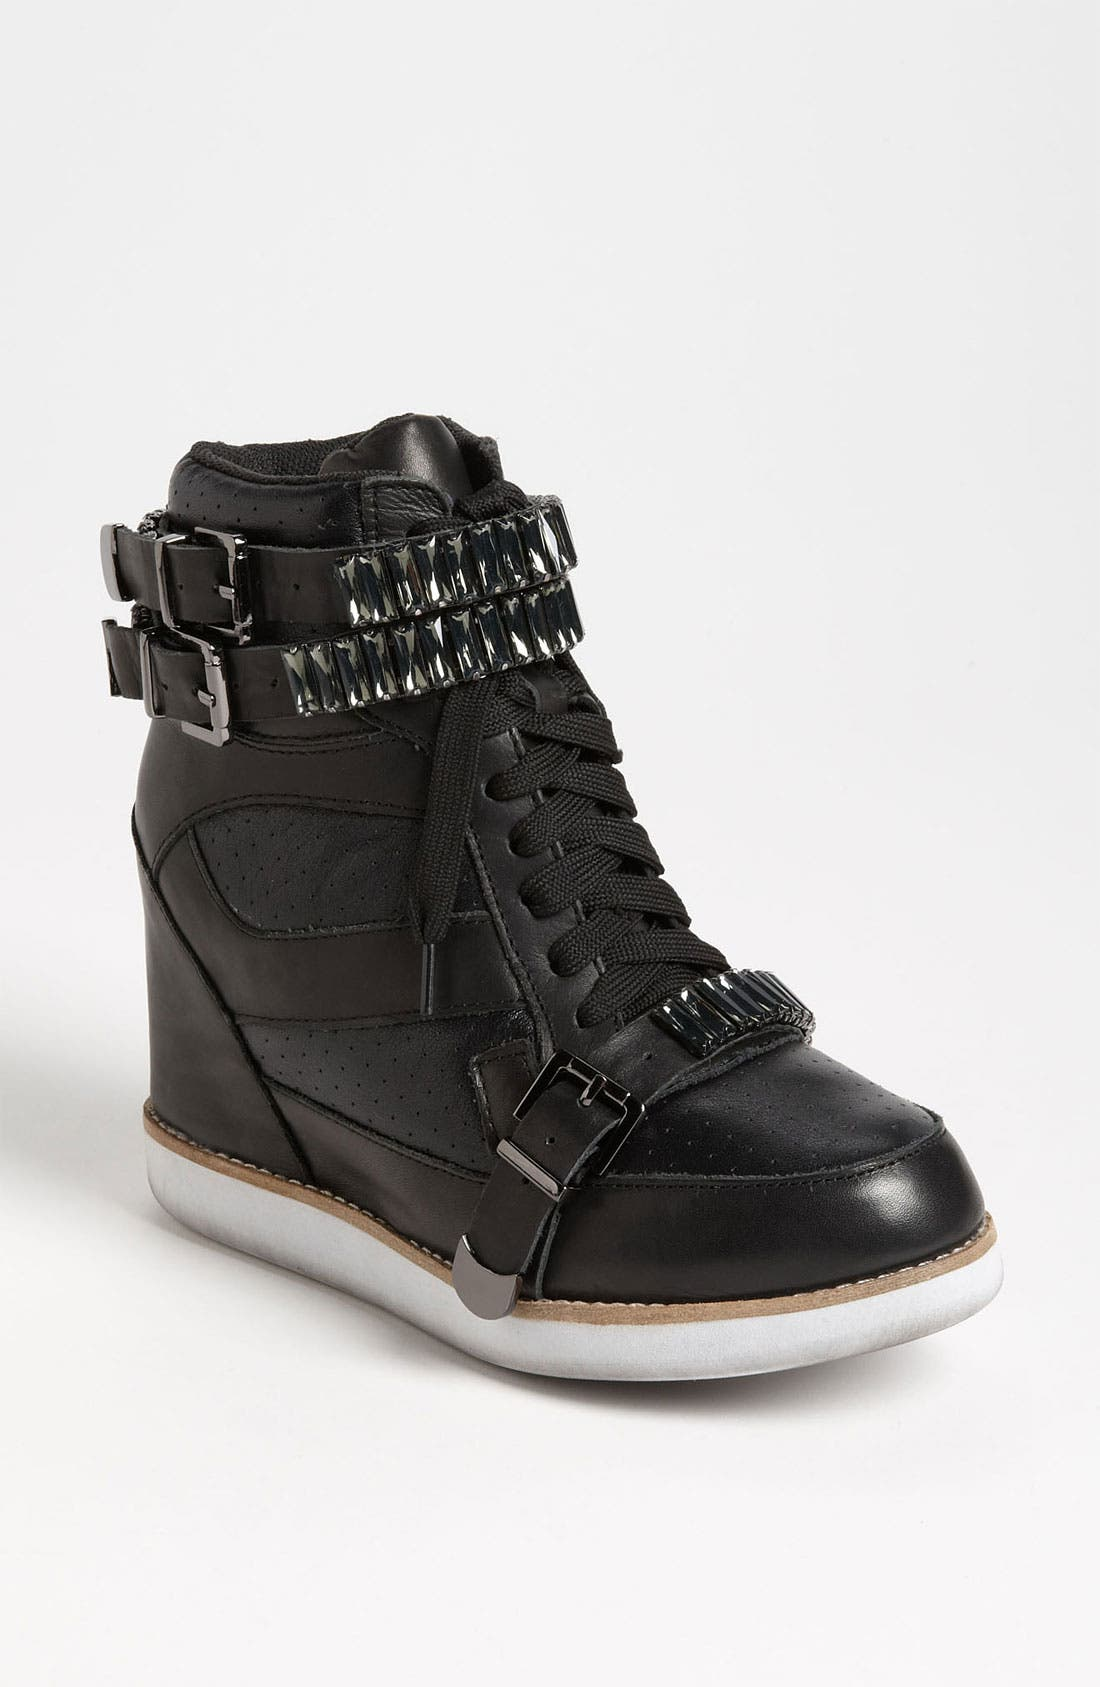 Alternate Image 1 Selected - Jeffrey Campbell 'Bonn' Sneaker